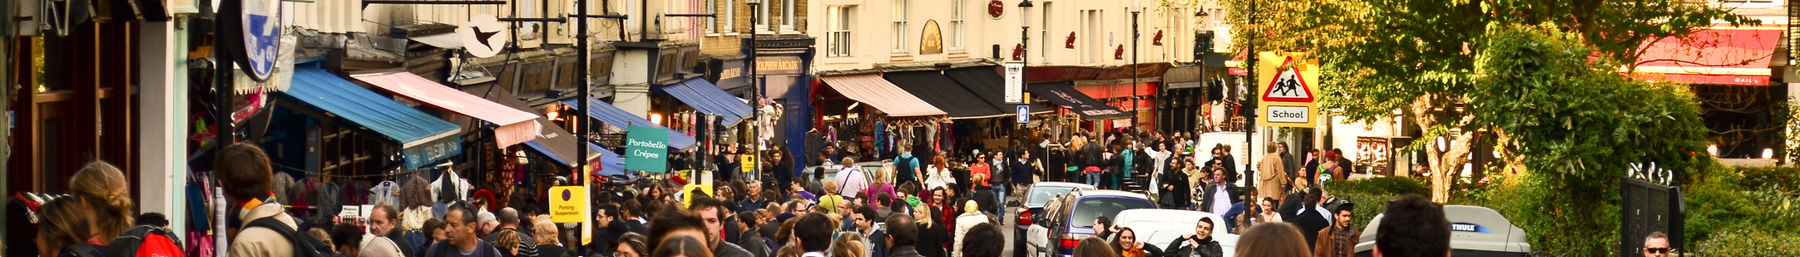 Portobello Road market banner (October 2011).jpg